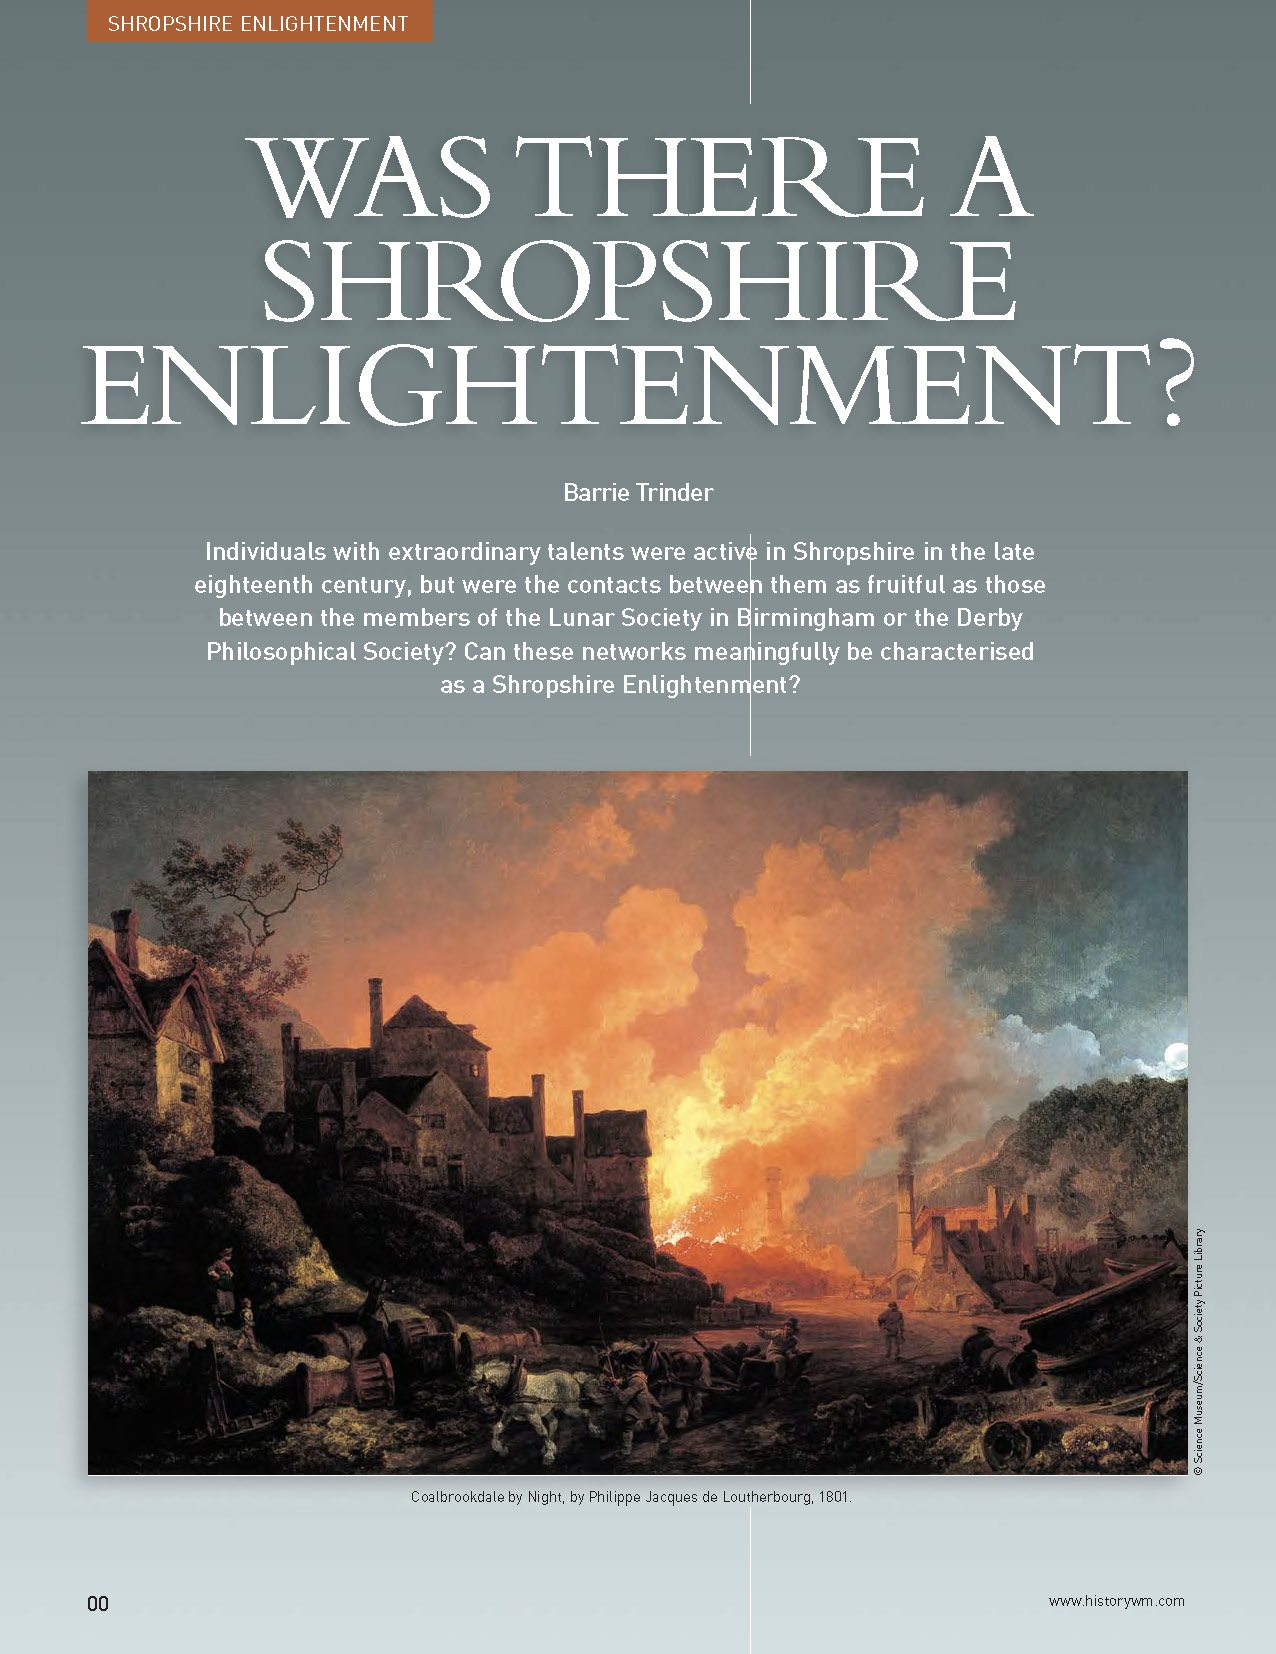 Was there a Shropshire enlightenment?